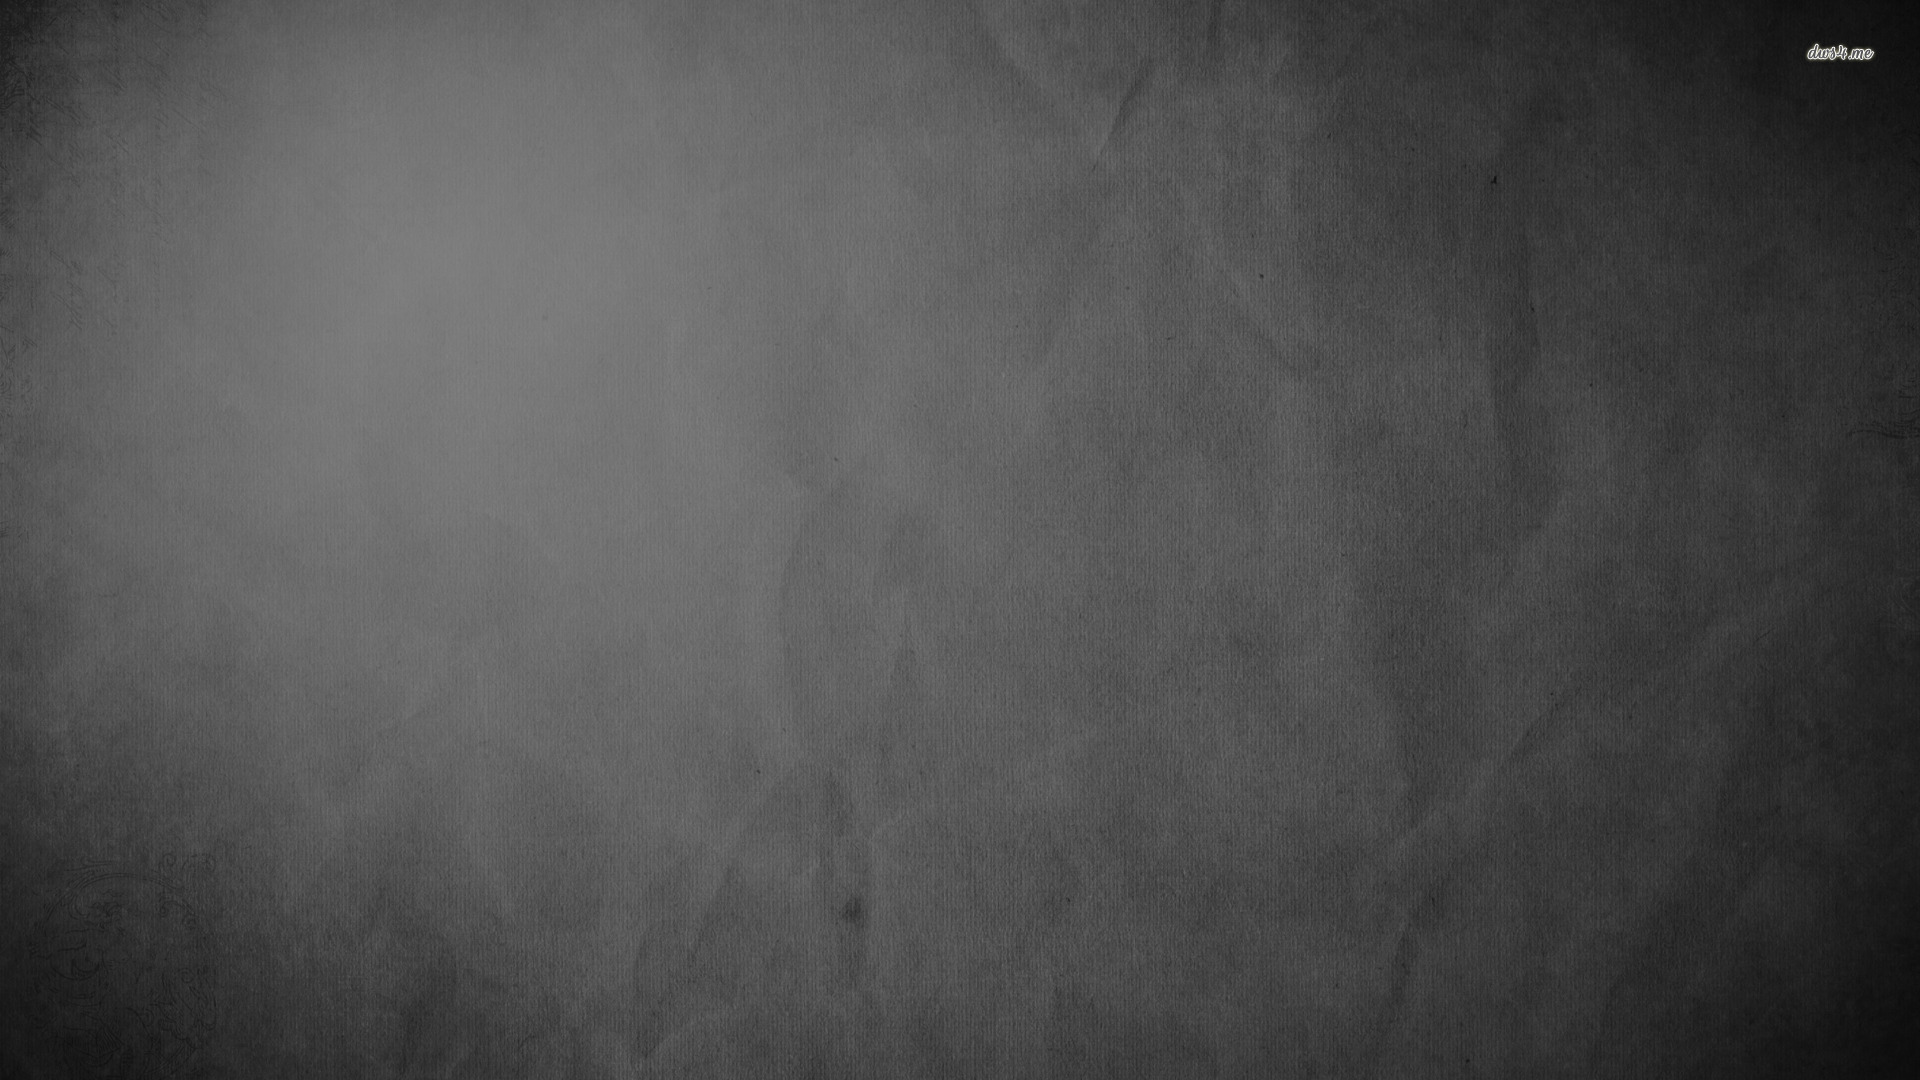 Grey Wallpaper 1920x1200 51270